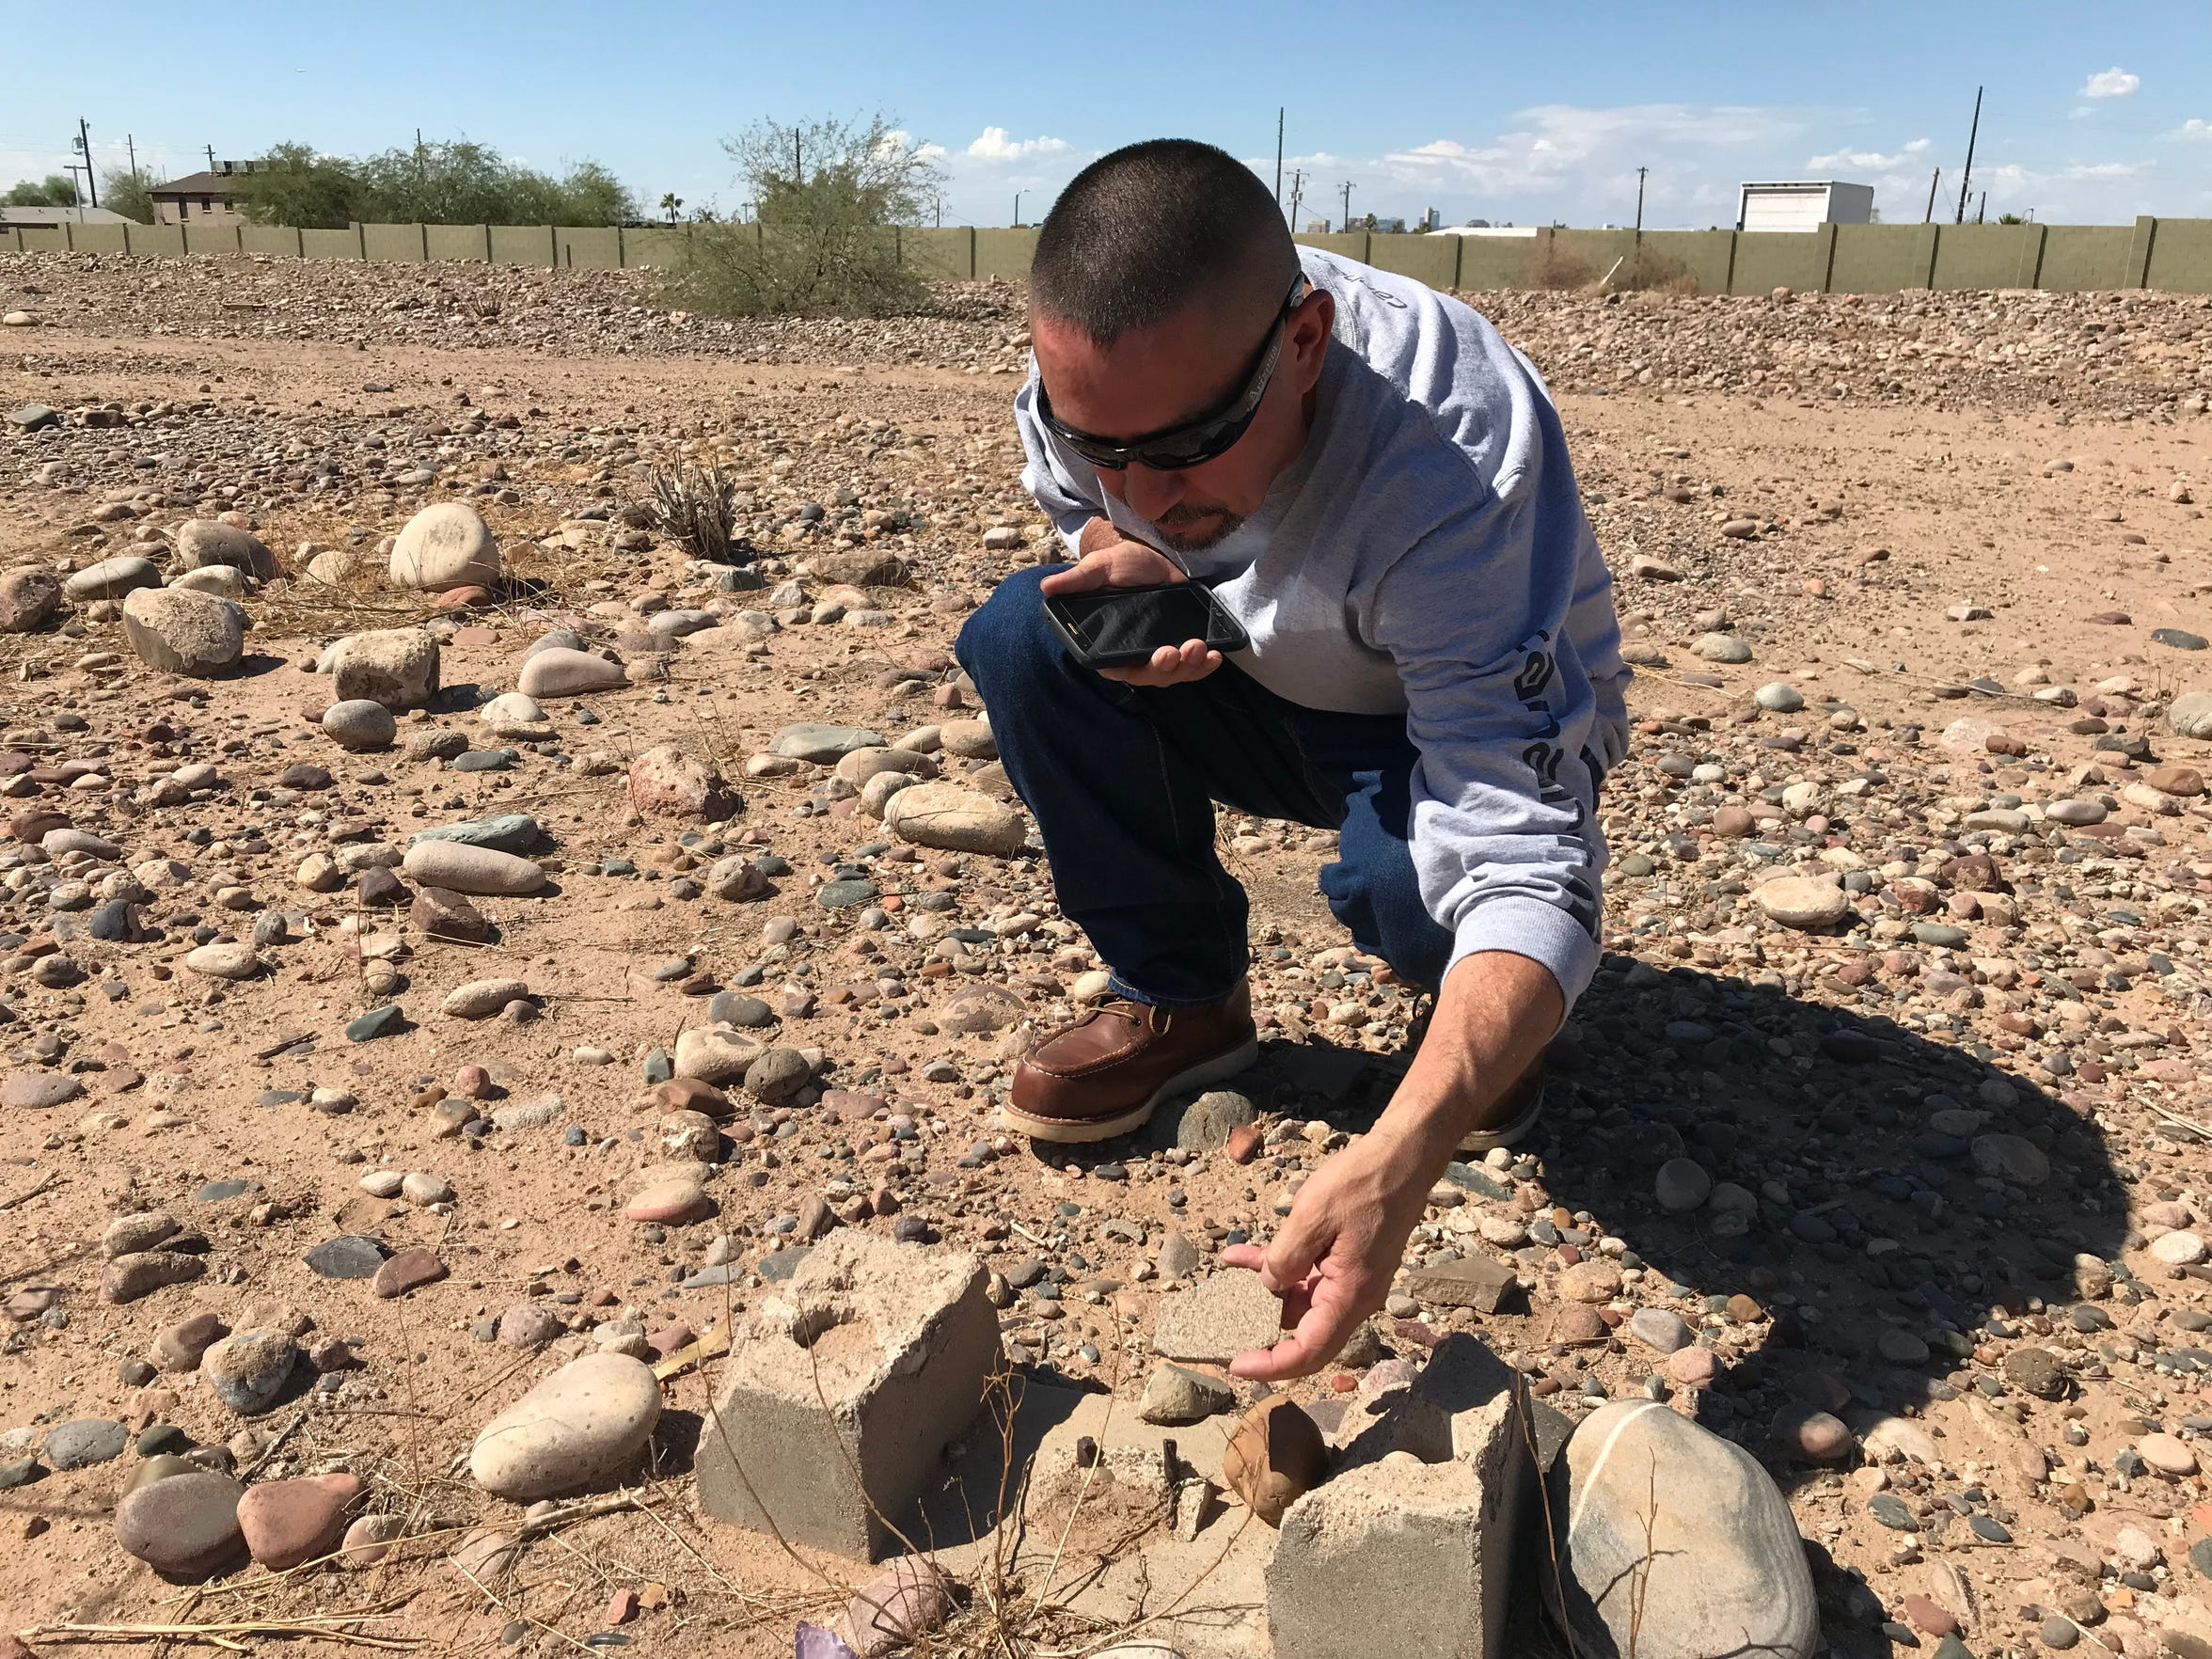 Tim Diaz, who grew up in the Sotelo-Heard neighborhood, examines the remains of a headstone that was vandalized years ago.